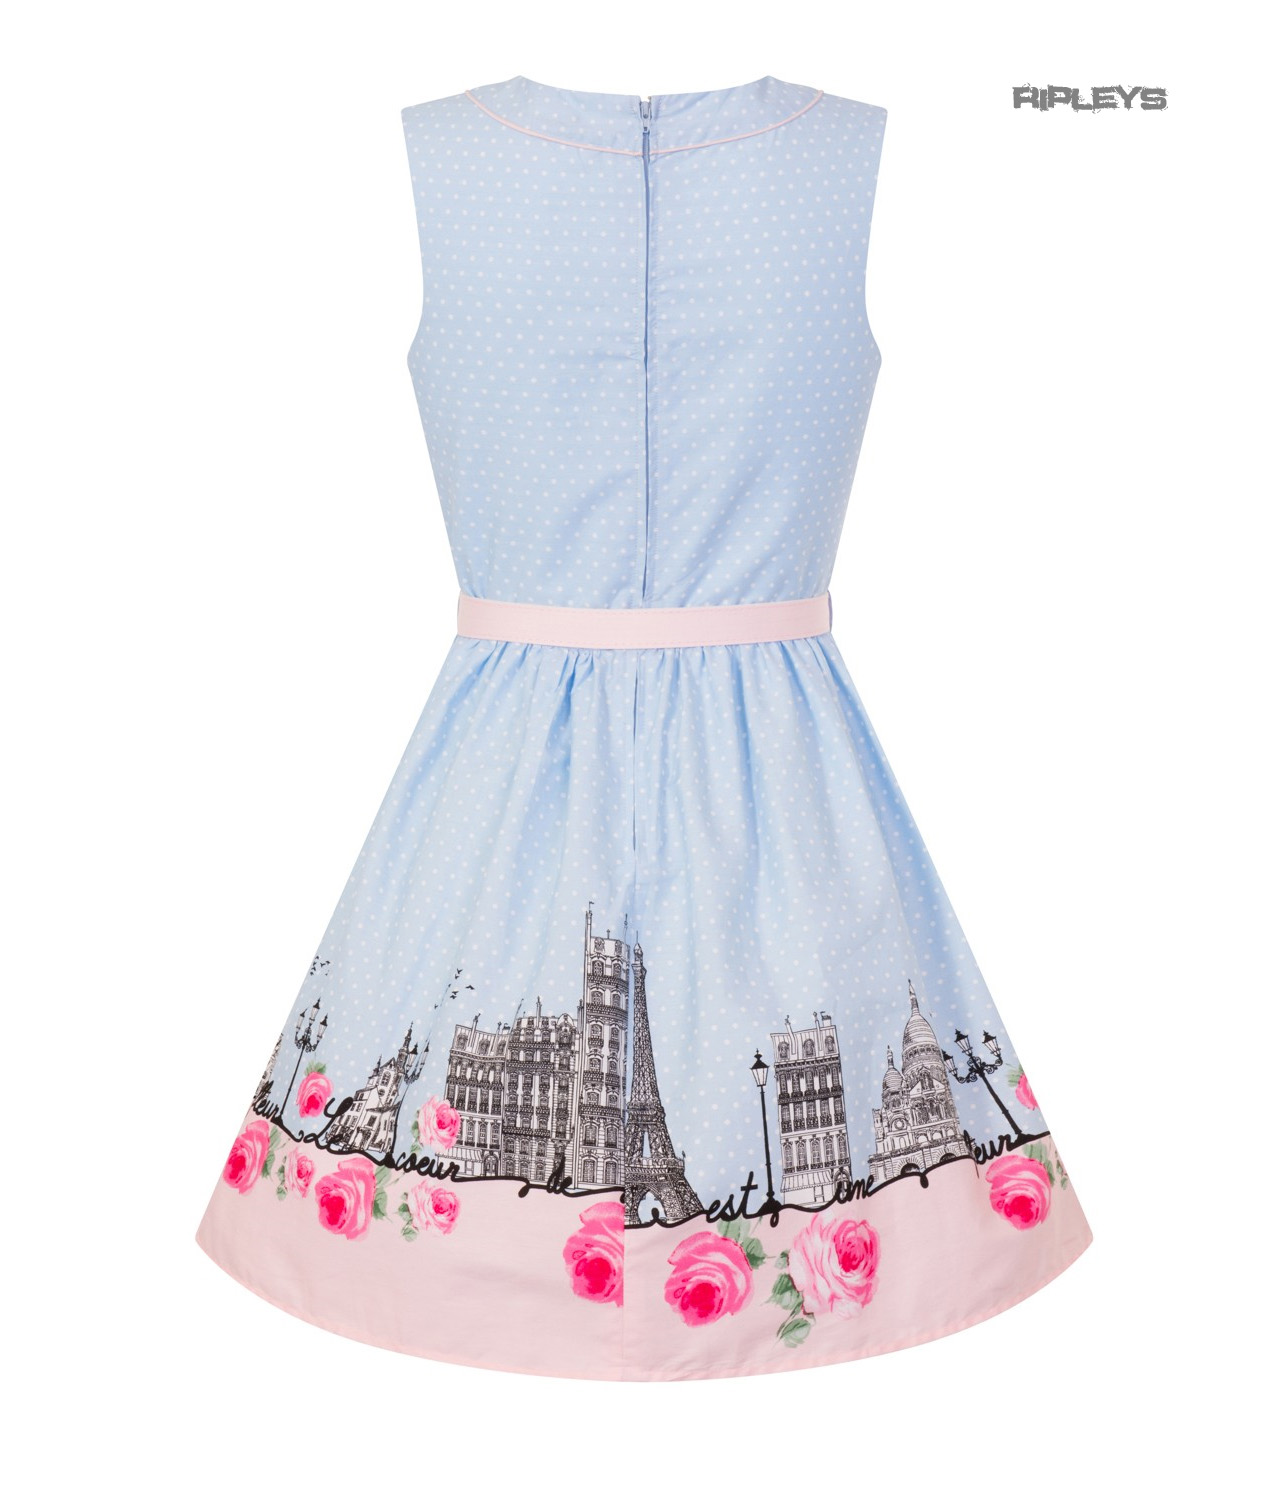 Hell-Bunny-50s-Vintage-Blue-Polka-Dot-PANAME-Mini-Dress-Paris-All-Sizes thumbnail 36